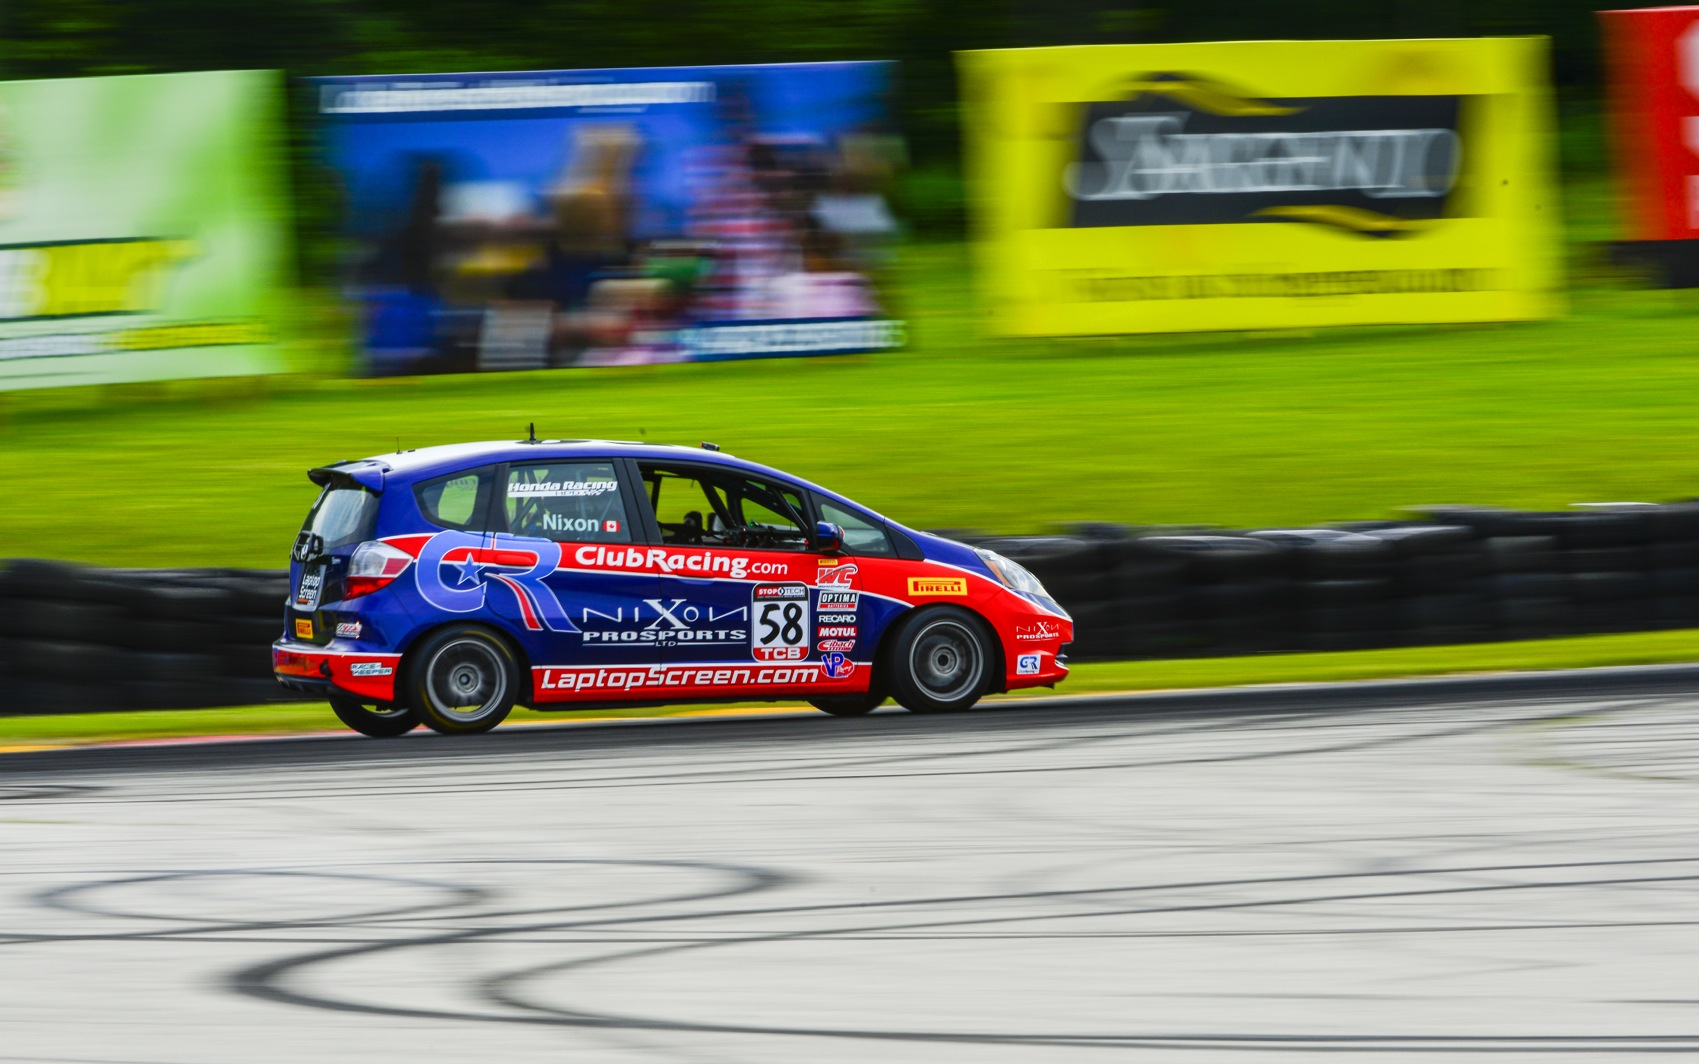 Honda Cars Of Columbia >> 2012 B-Spec Honda Fit Race Car For Sale - $15000